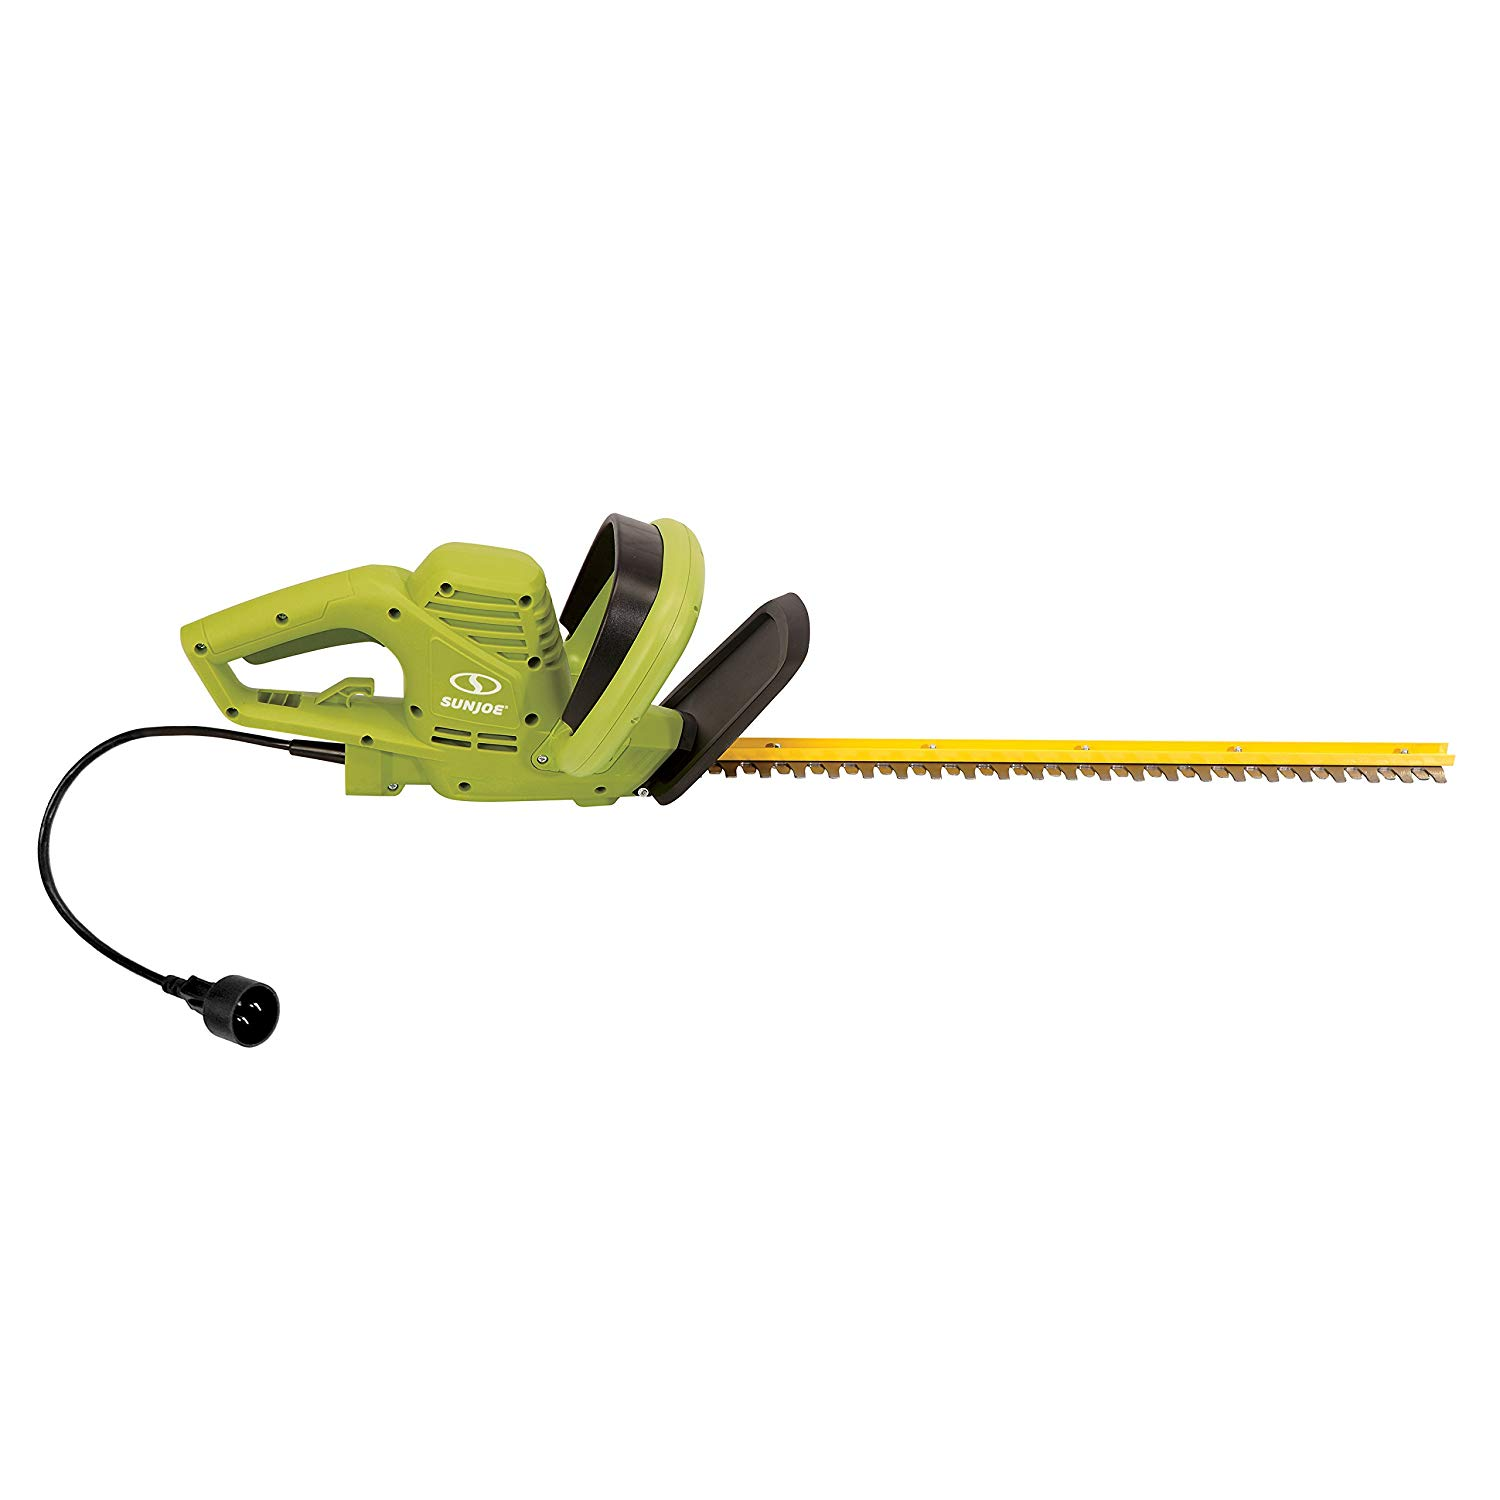 (HJ22HTE) Electric Hedge Green Trimmer from Sun Joe